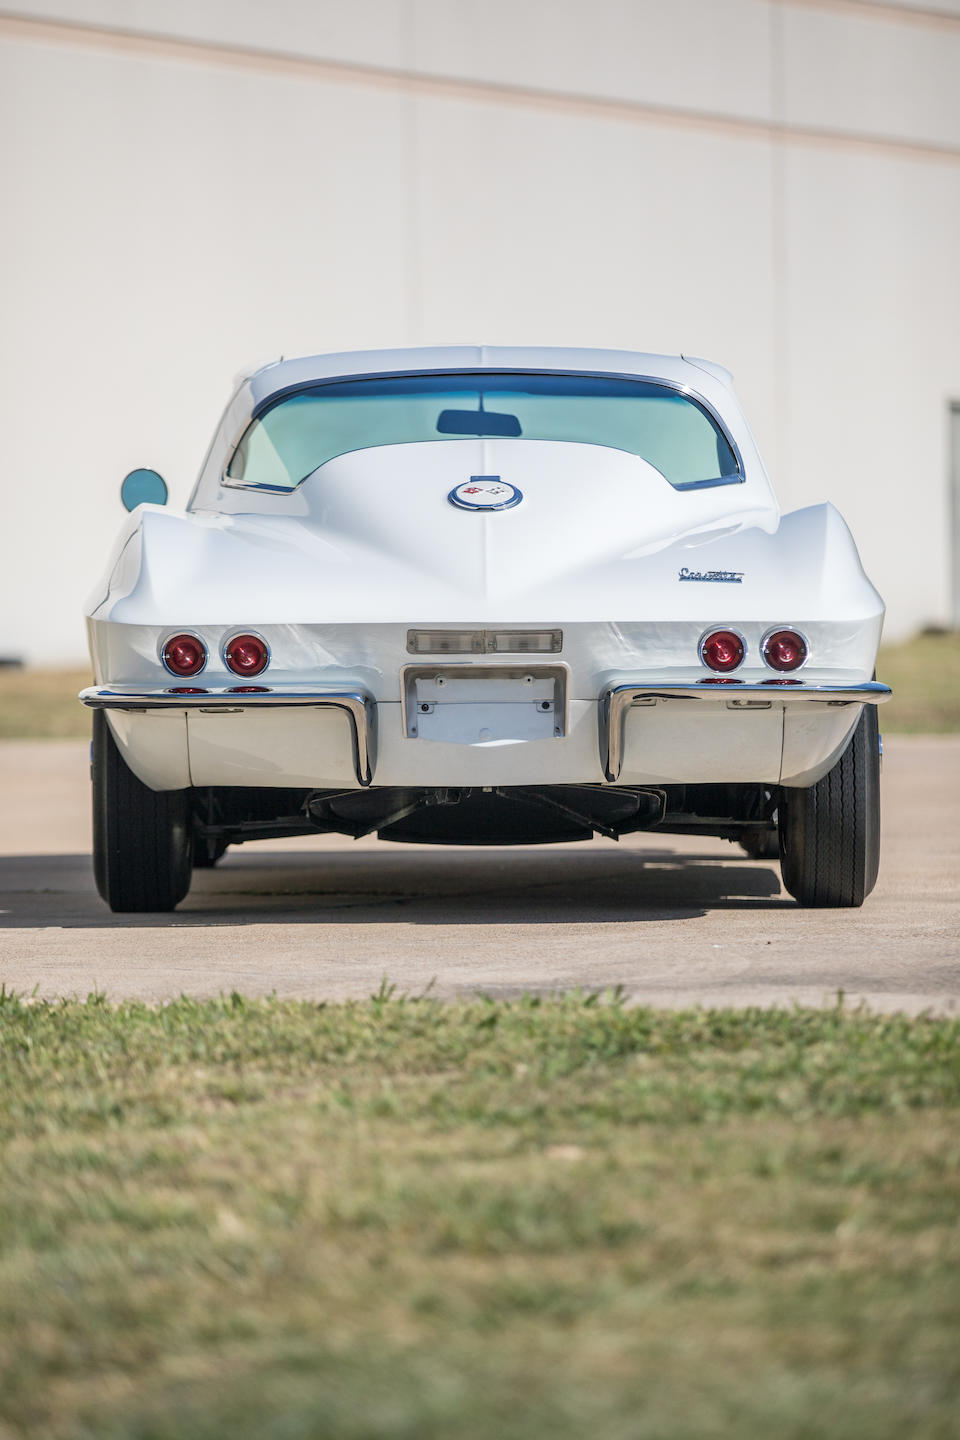 <b>1967 Chevrolet Corvette Coupe 427/435HP Coupe</b><br />Chassis no. 194377S1100975<br />Engine no. T1003JE 7110976